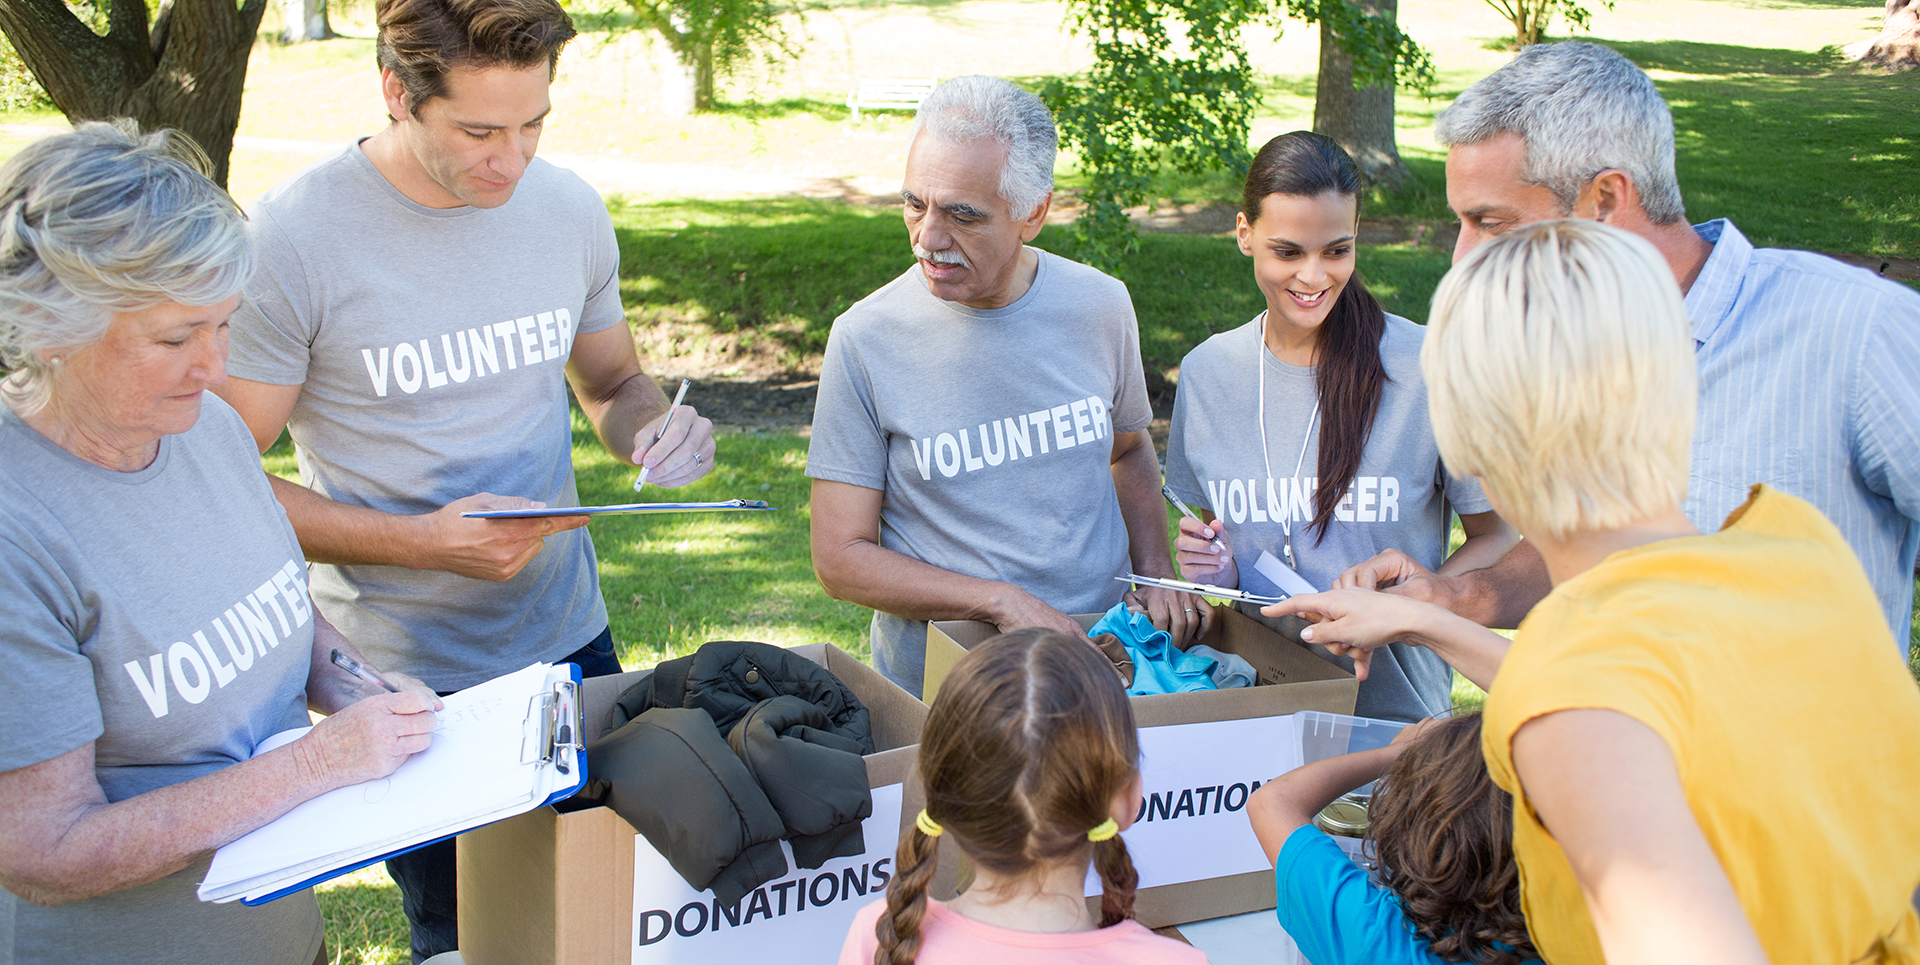 """A group of diverse volunteers gathered around several boxes labeled """"Donations"""""""